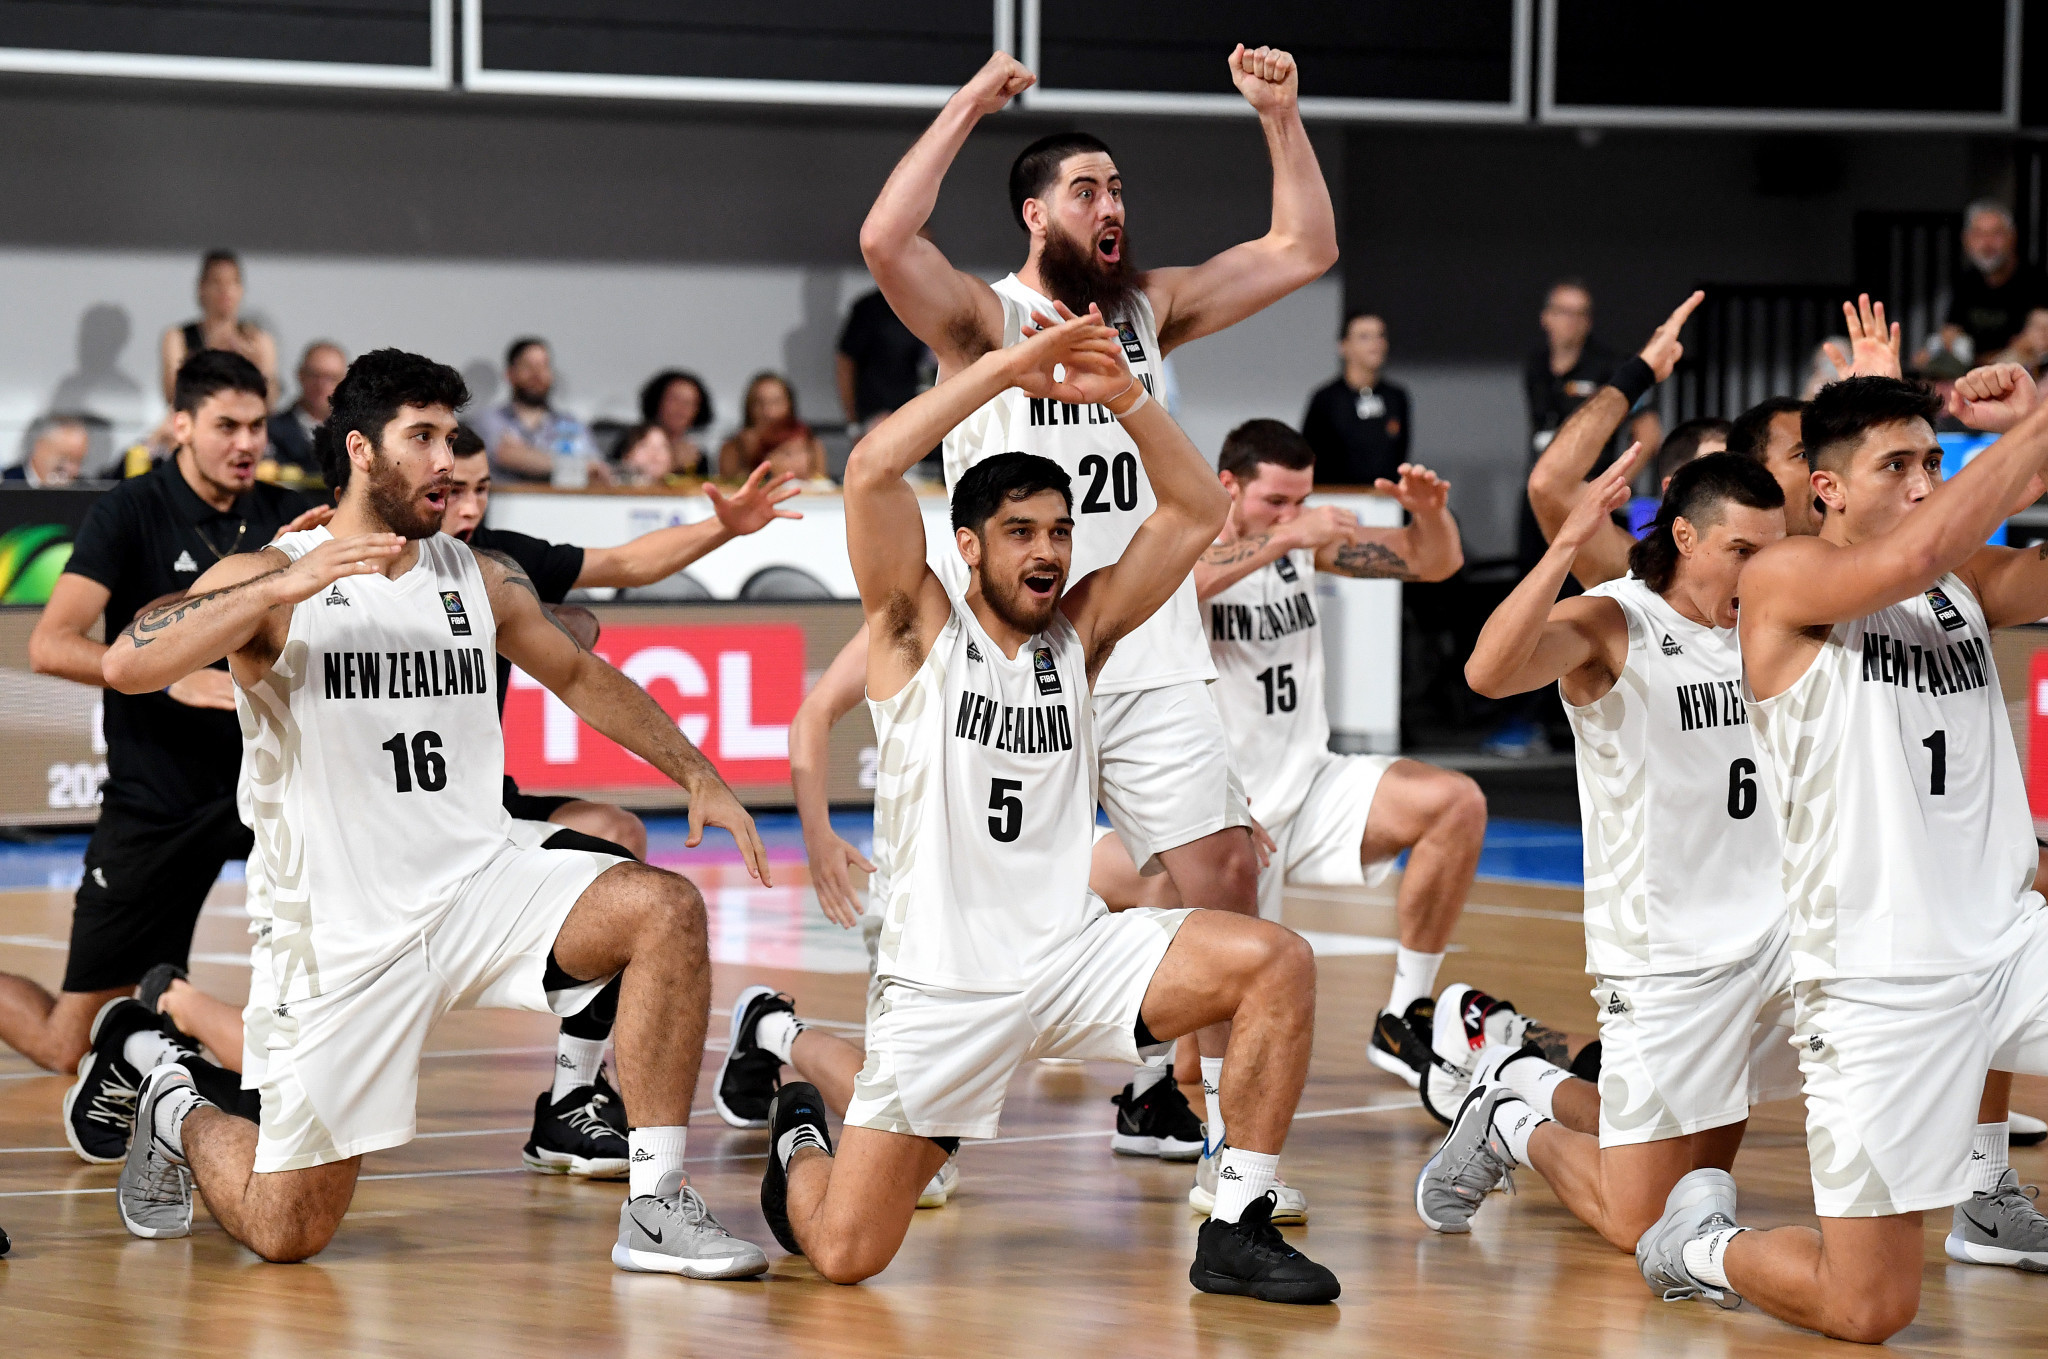 Basketball New Zealand will focus on long-term qualification cycles ©Getty Images